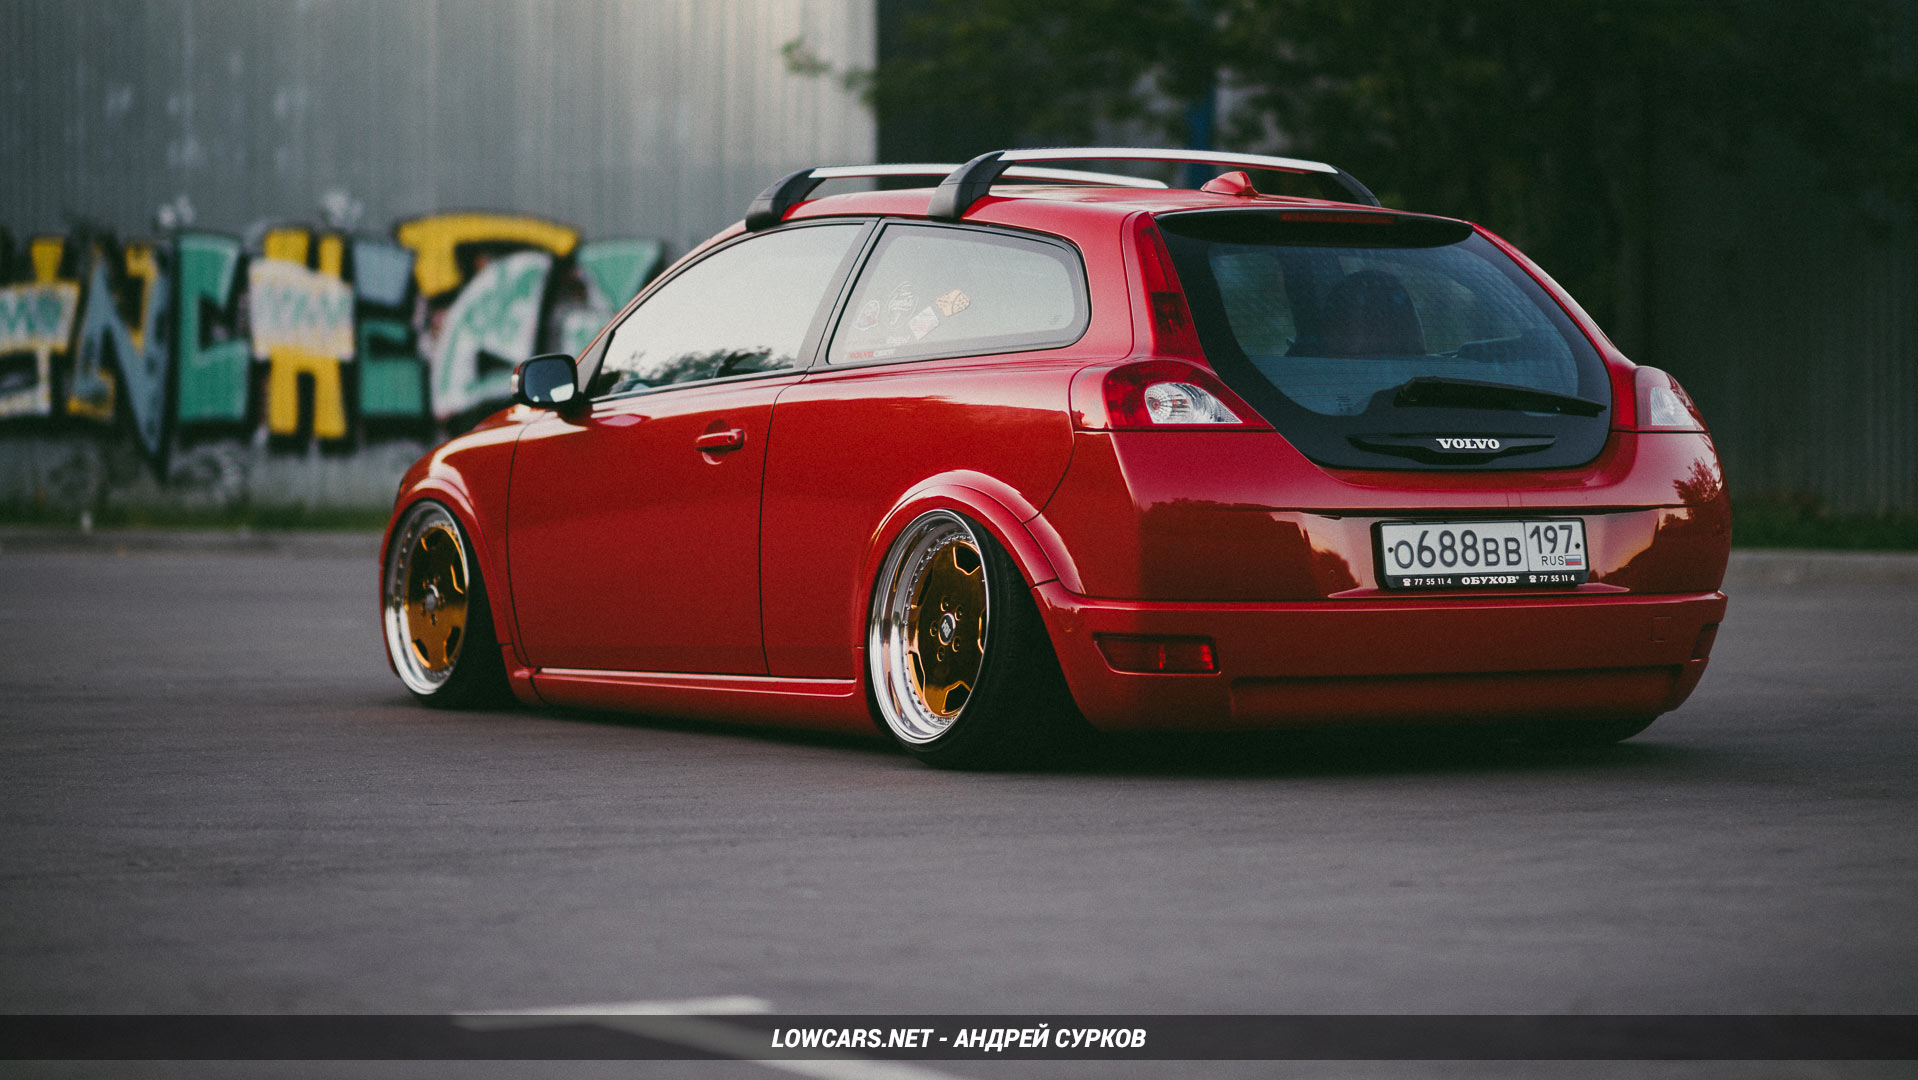 Volvo C30 Bagged Parrot